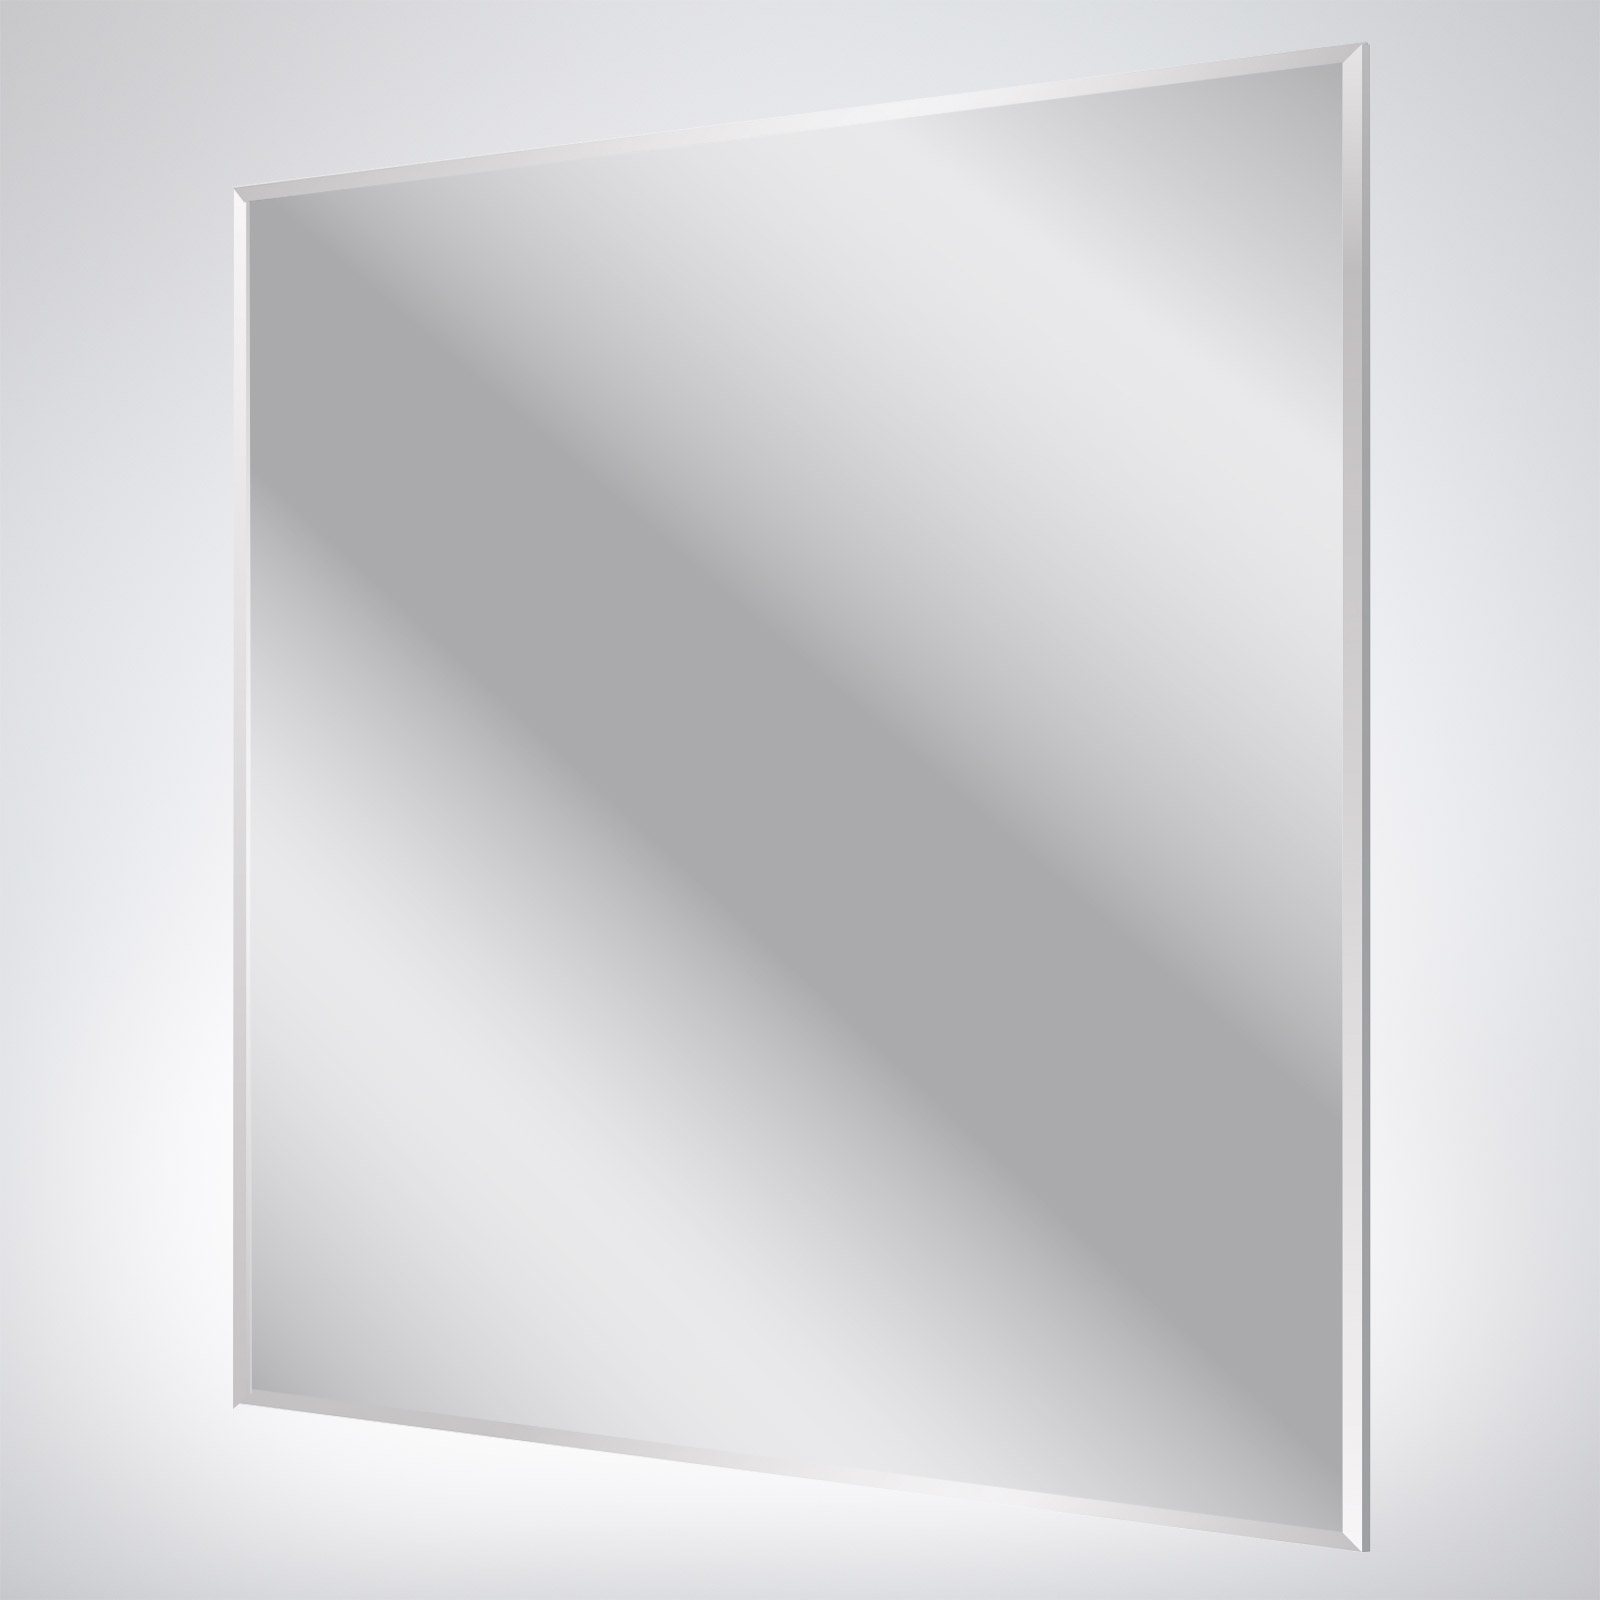 Bevel Edge Mirror 1200x900x5mm